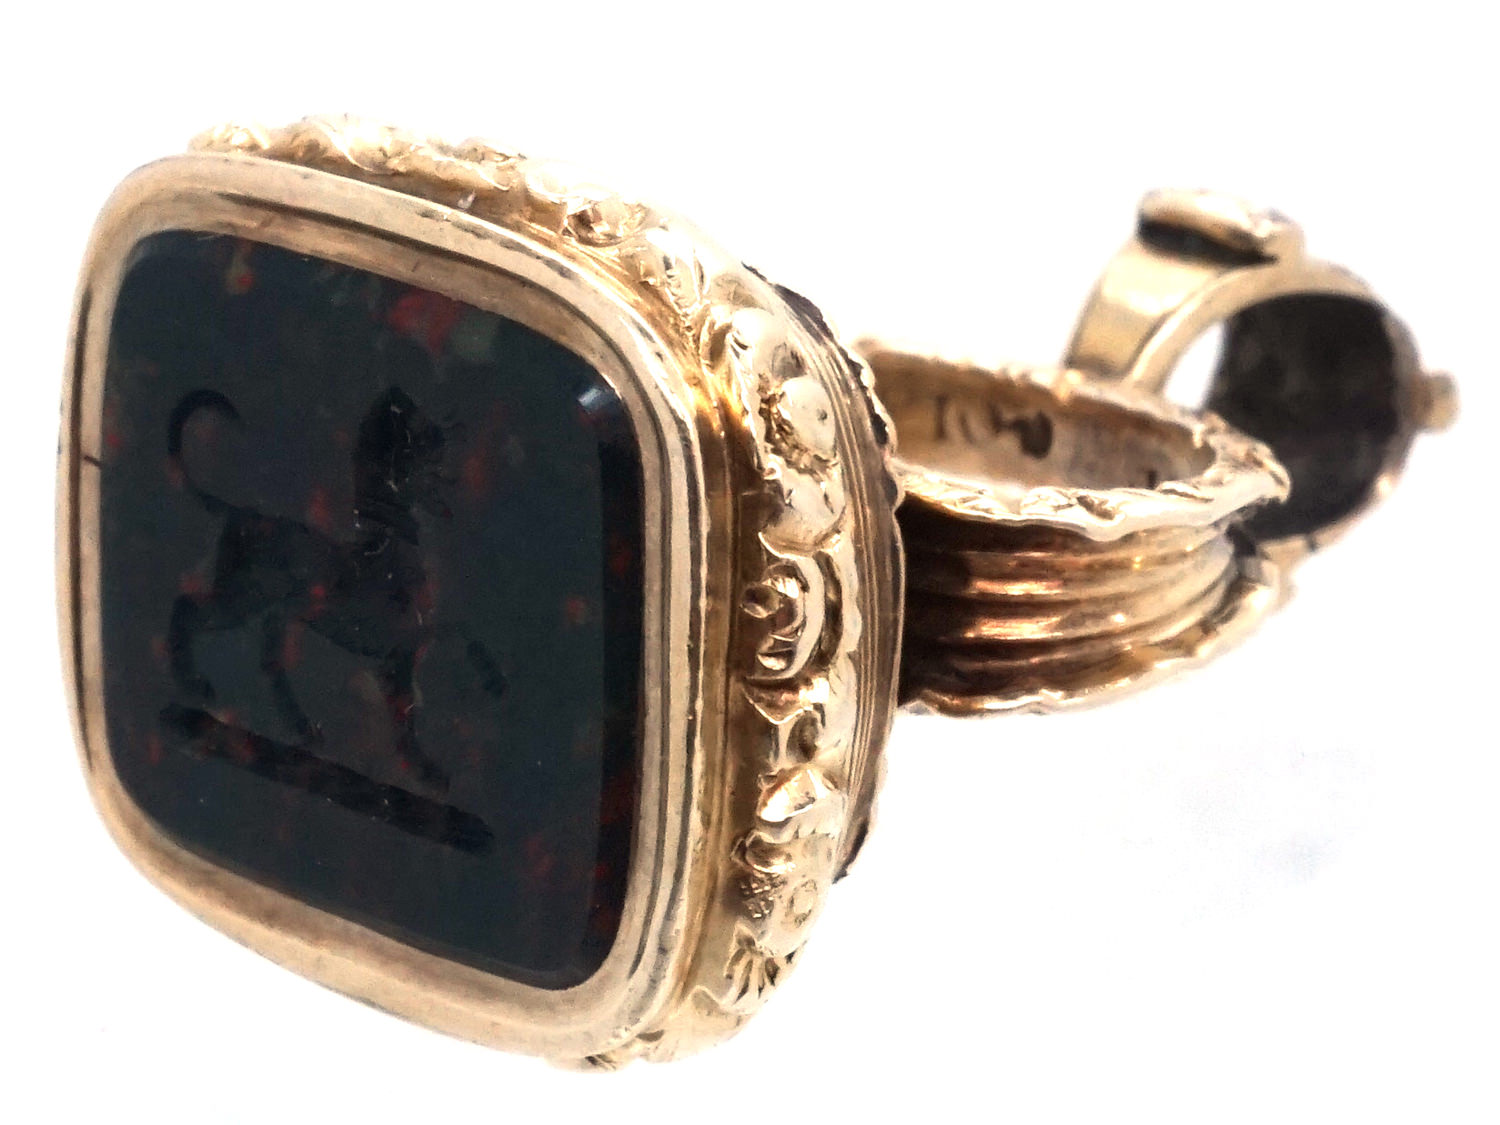 Regency Gold Seal with Bloodstone Intaglio of a Dog